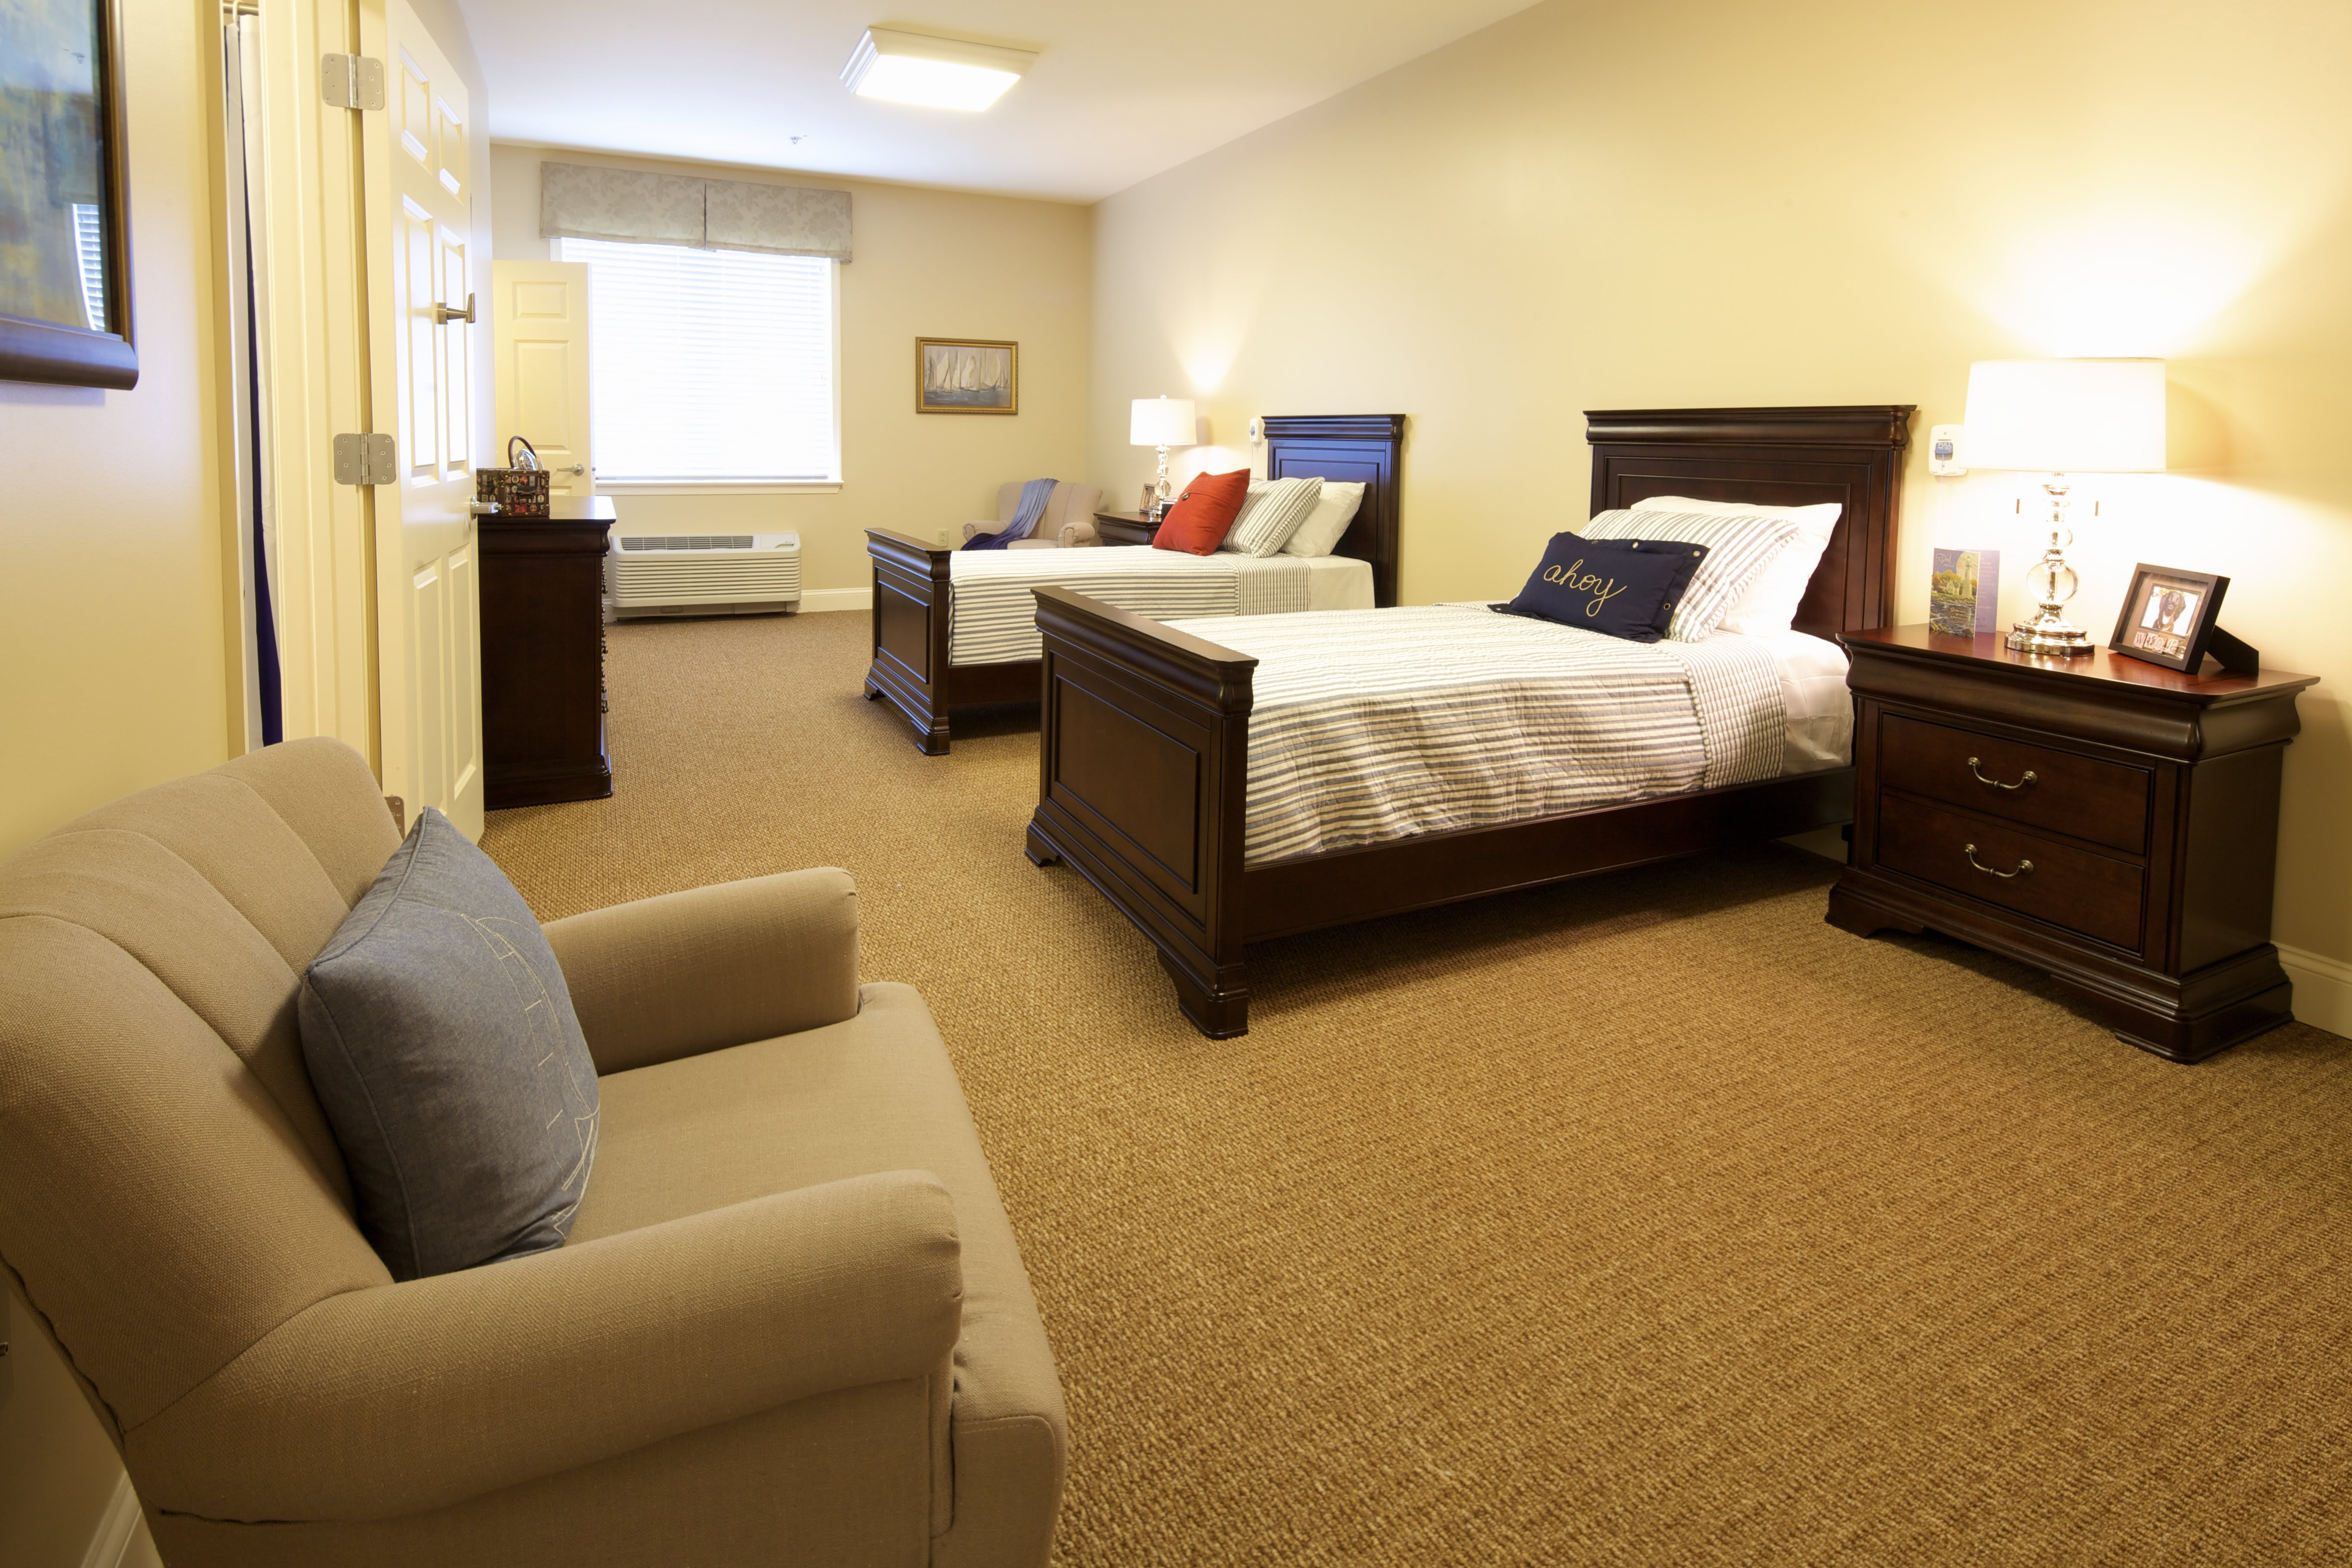 Photo 1 of Commonwealth Senior Living at Leigh Hall